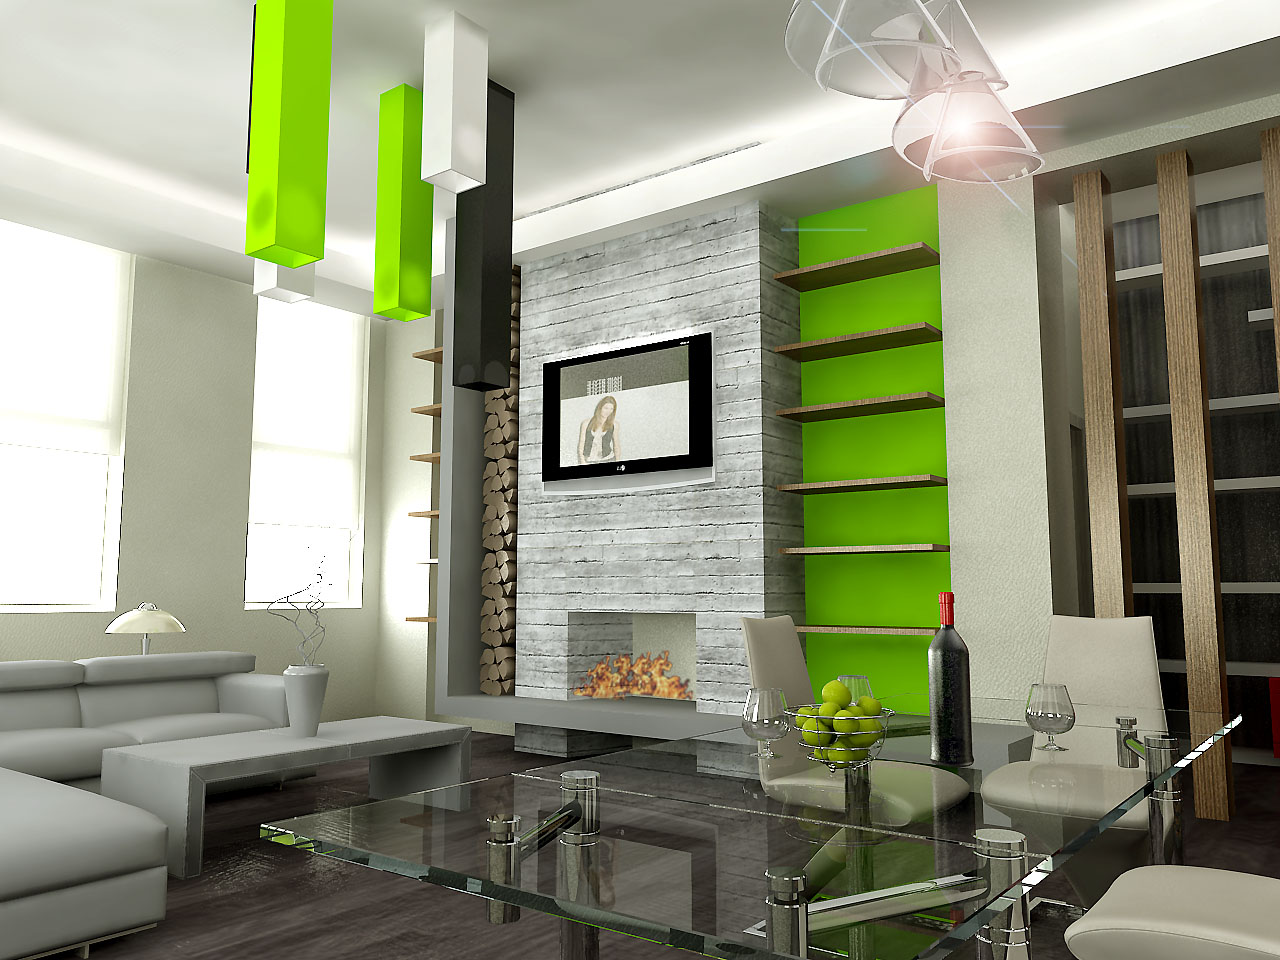 Interior-Design-for-Dummies-contrast-in-interior-design-shocking-green-wall-and-ceiling-accents-modern-living-room.jpg